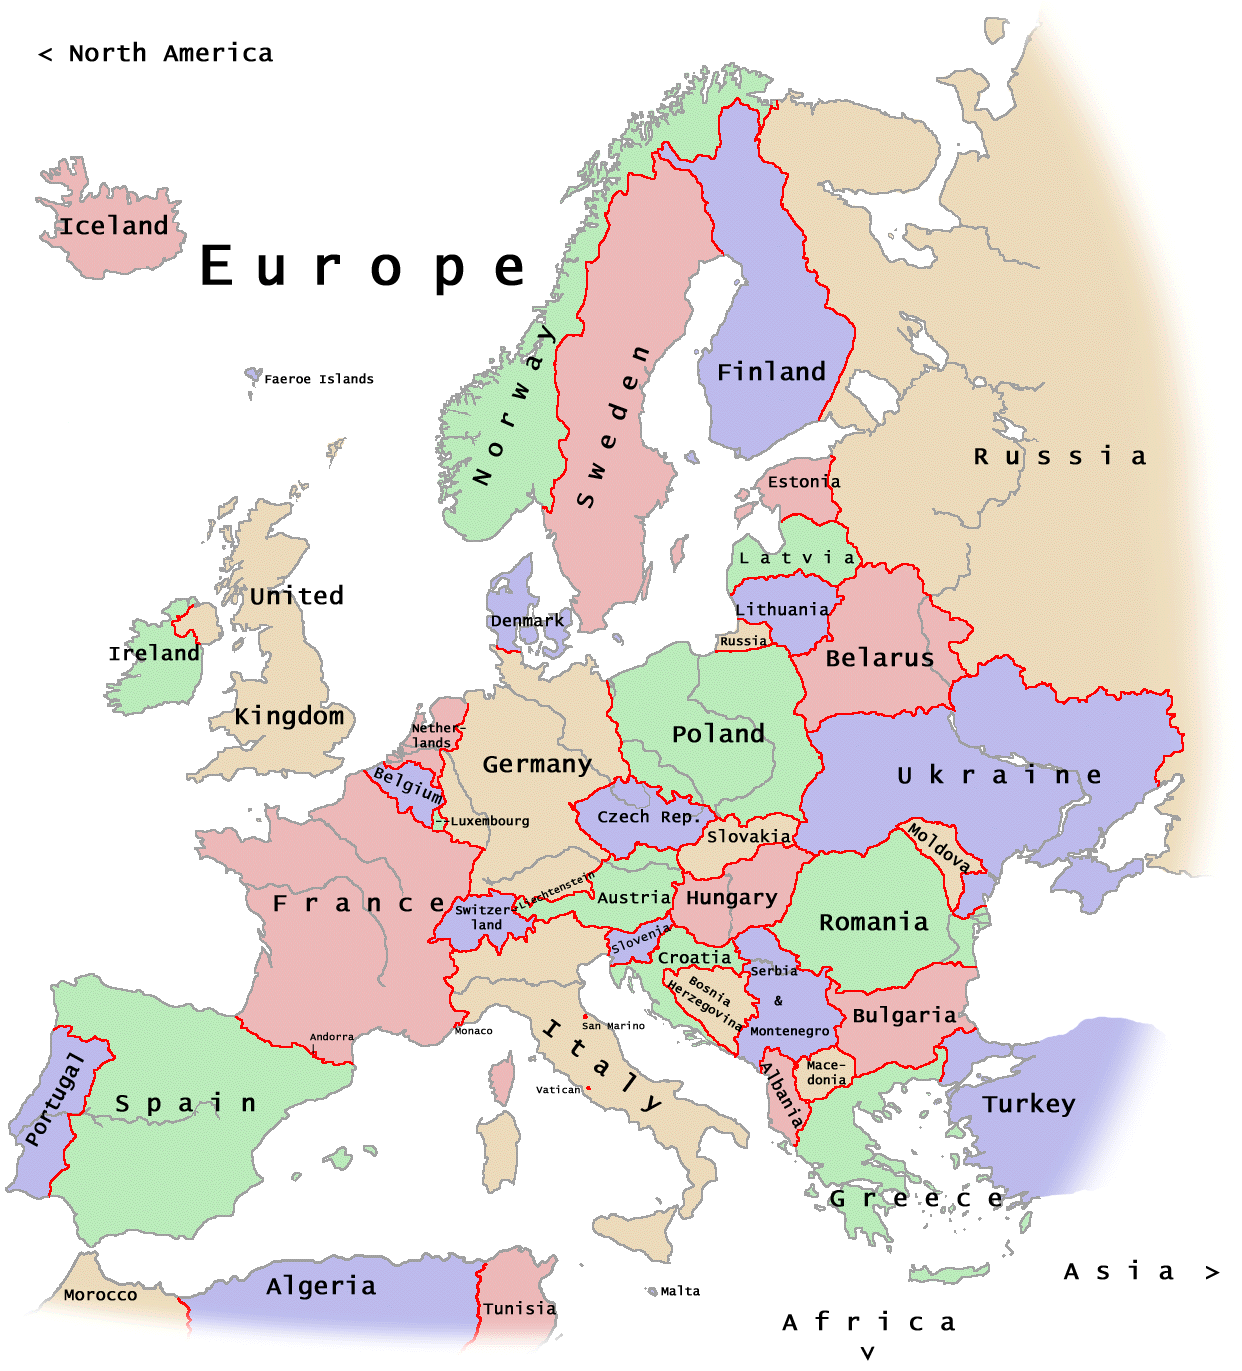 File:Europe-large.png - Wikimedia Commons